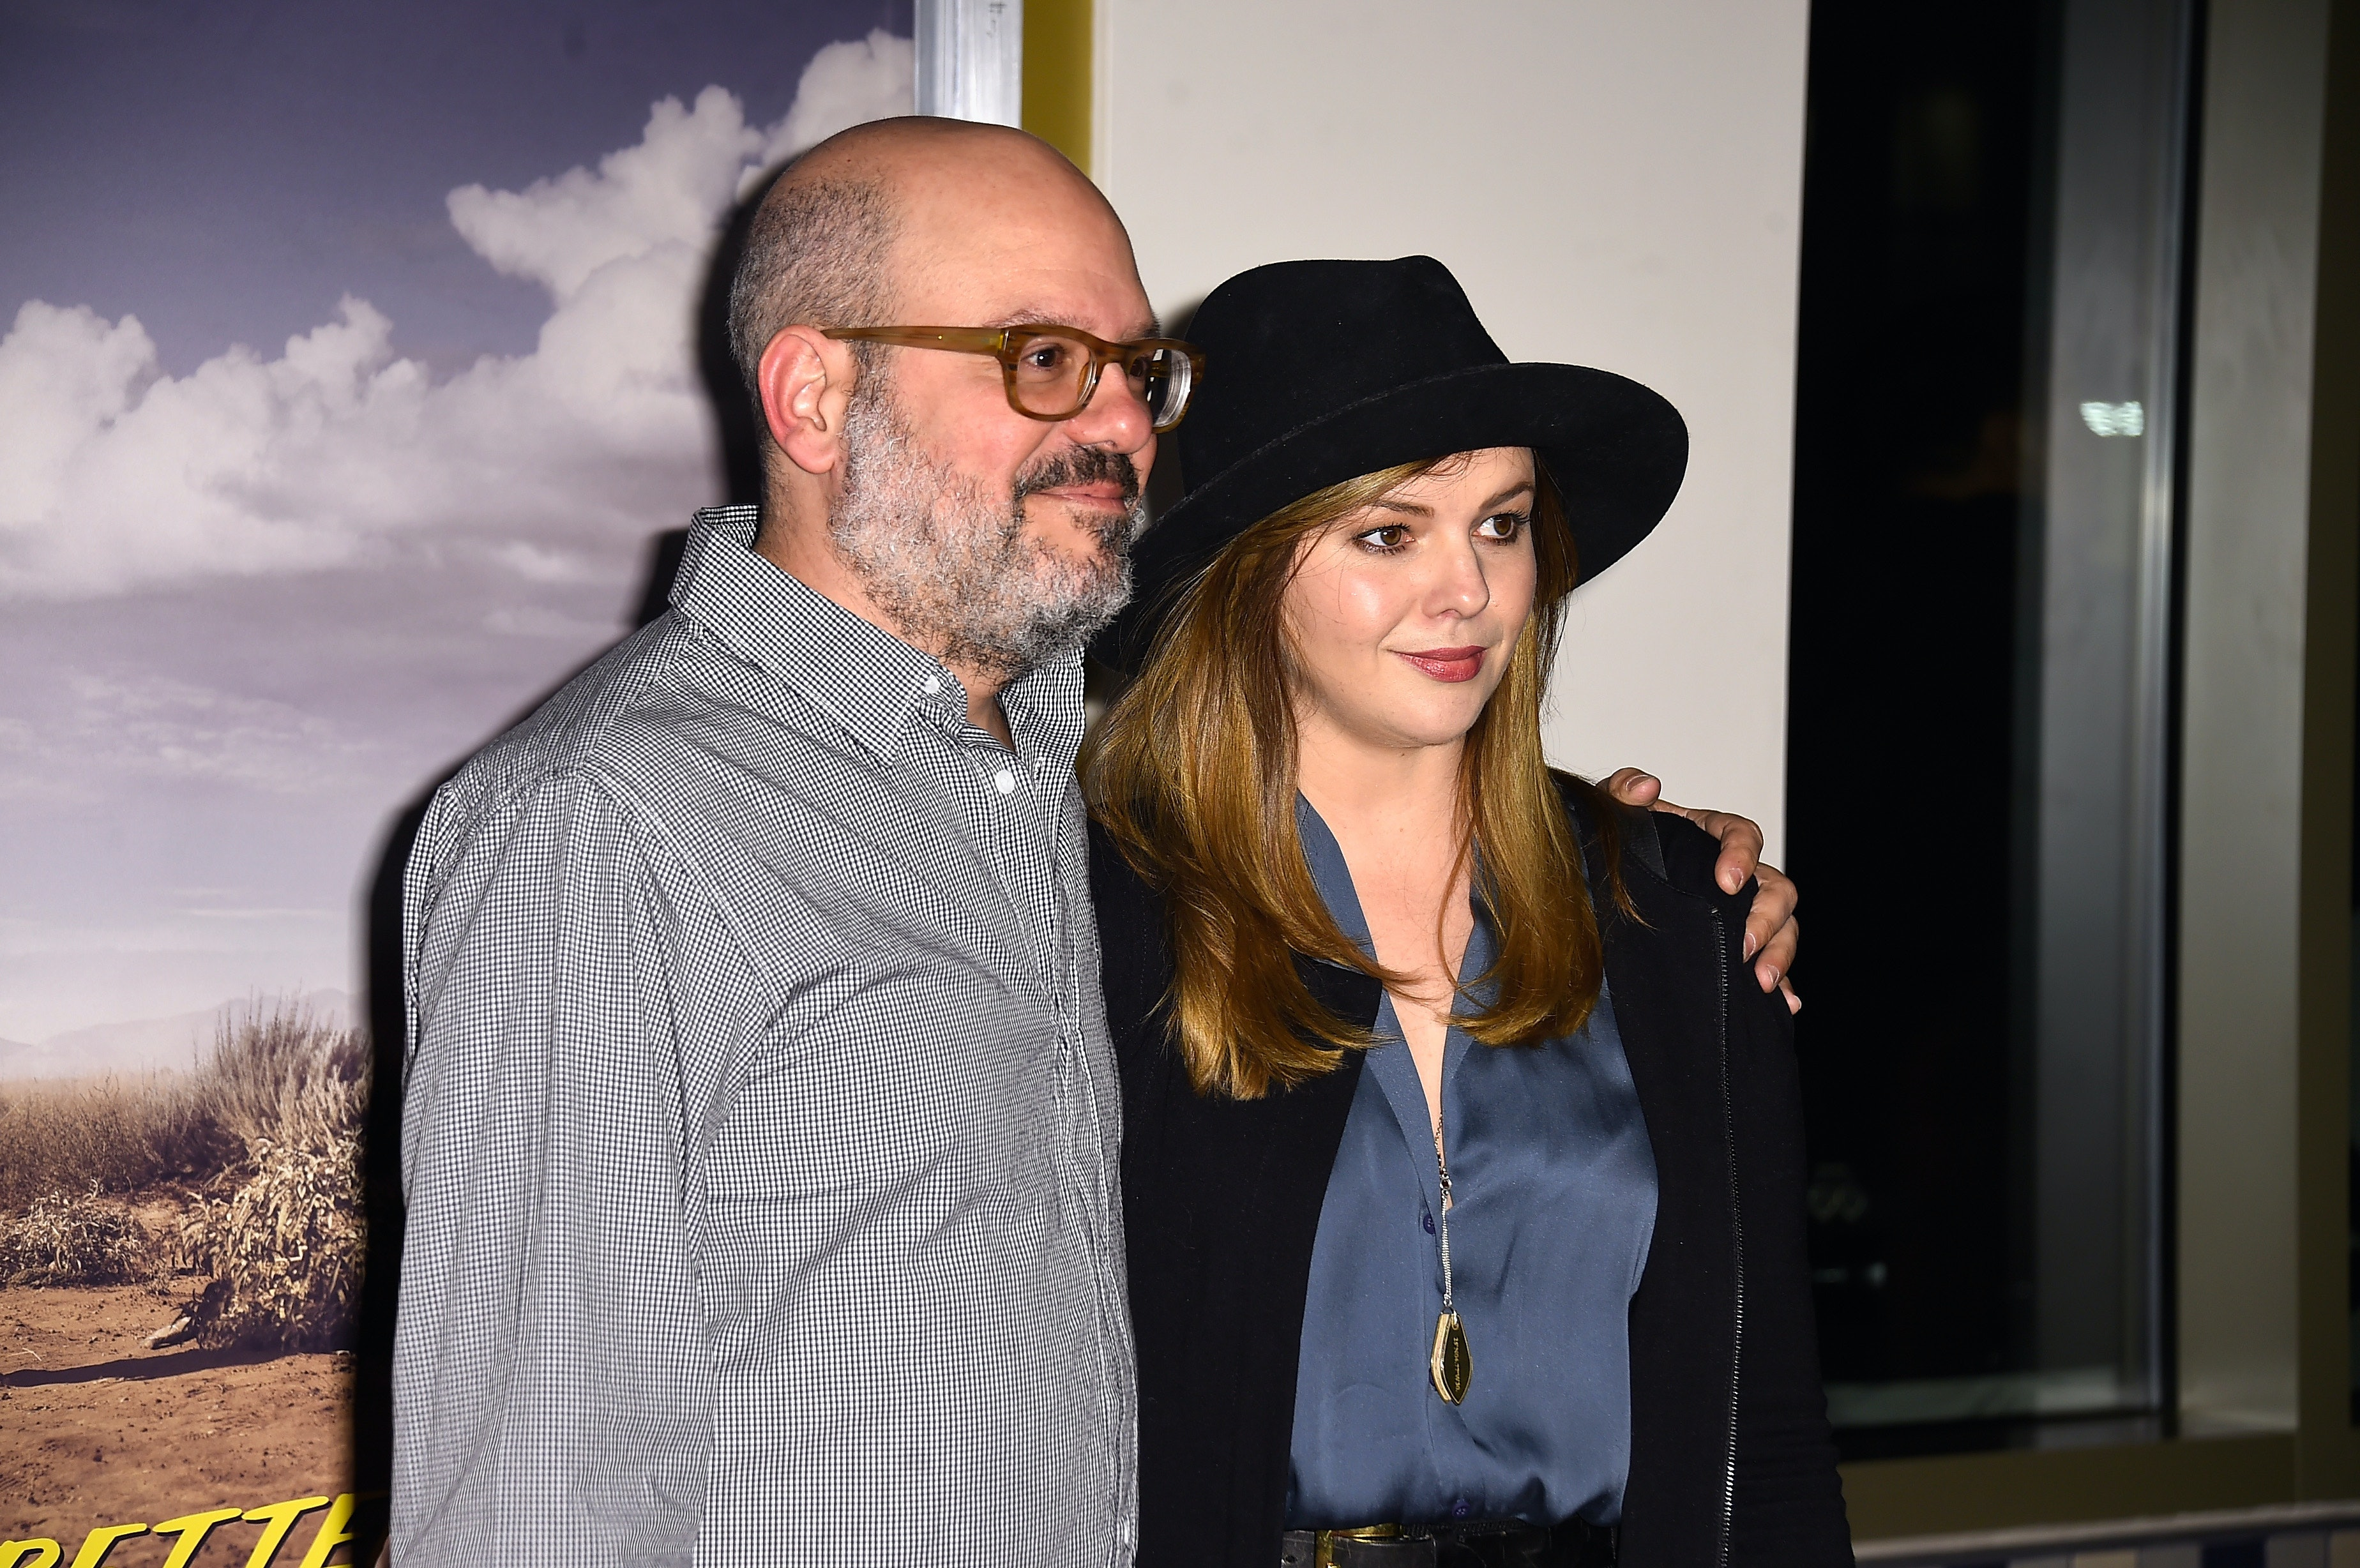 Amber Tamblyn Wedding.How Did Amber Tamblyn David Cross Meet Skymall Brought Them Together